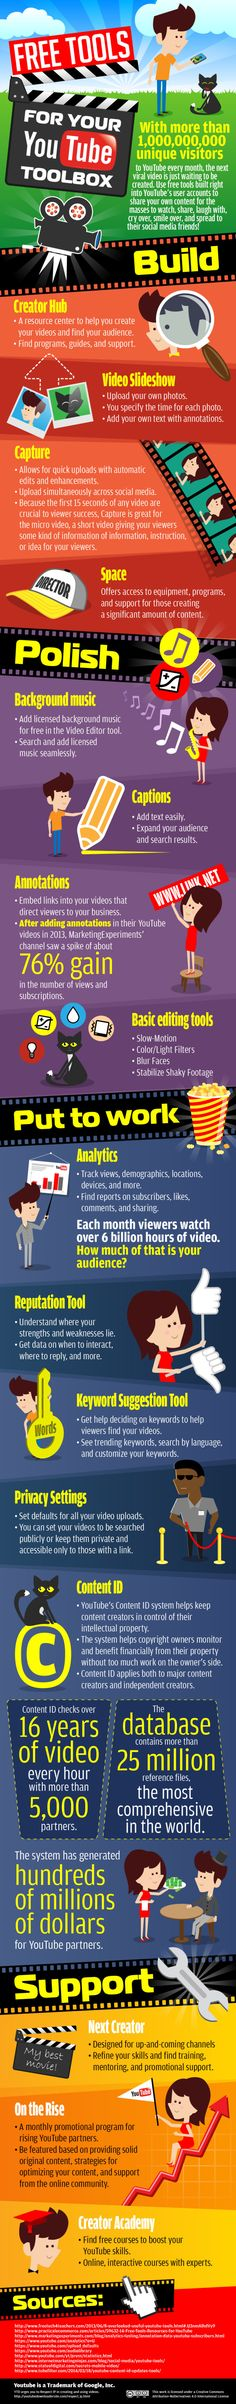 Awesomizing #YouTube #INFOGRAPHIC | Social Media Today